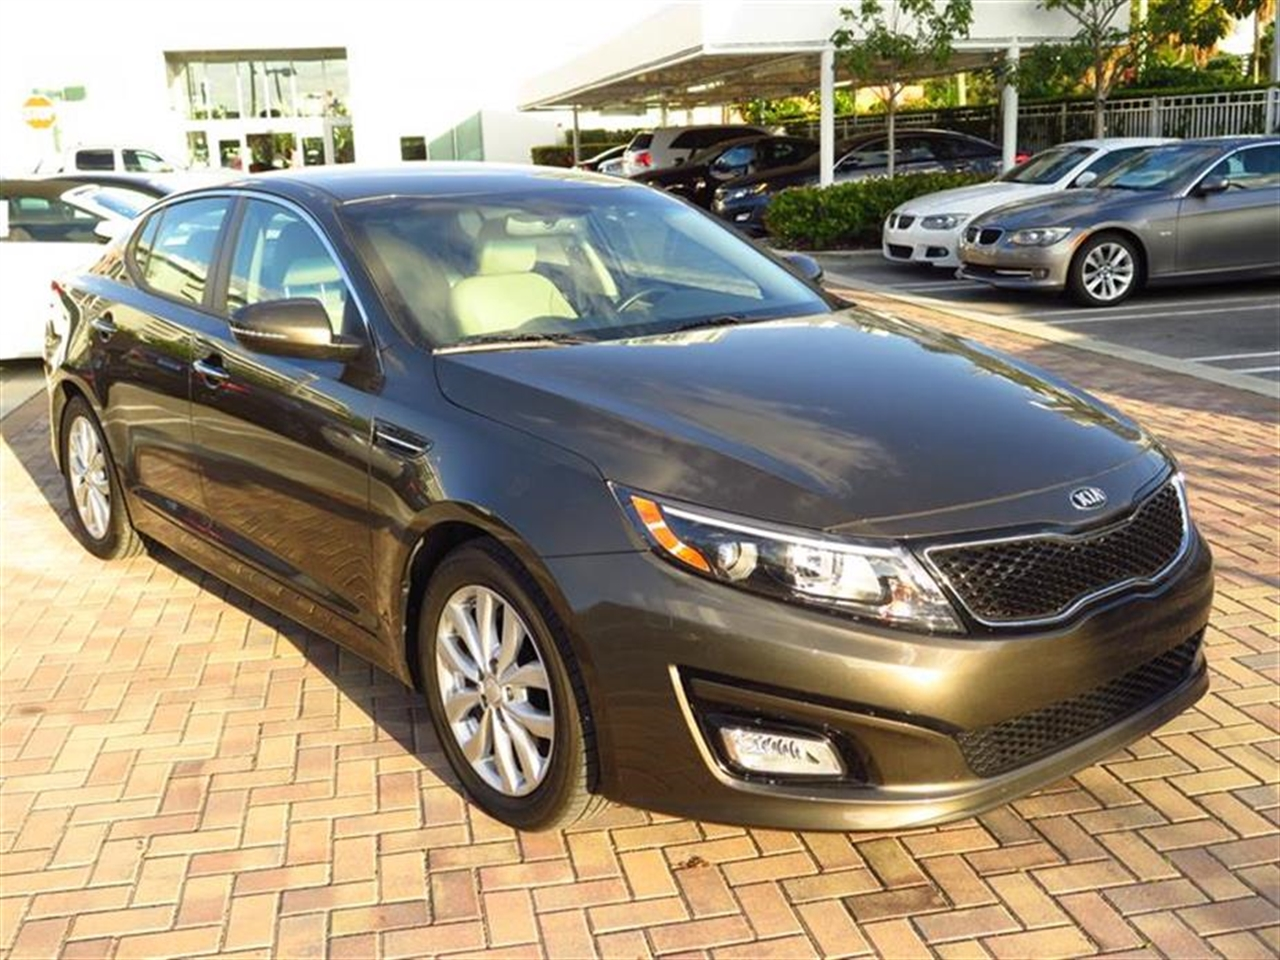 2014 KIA OPTIMA 4dr Sdn EX 10420 miles 2 12V DC Power Outlets 2 Seatback Storage Pockets 4-Way